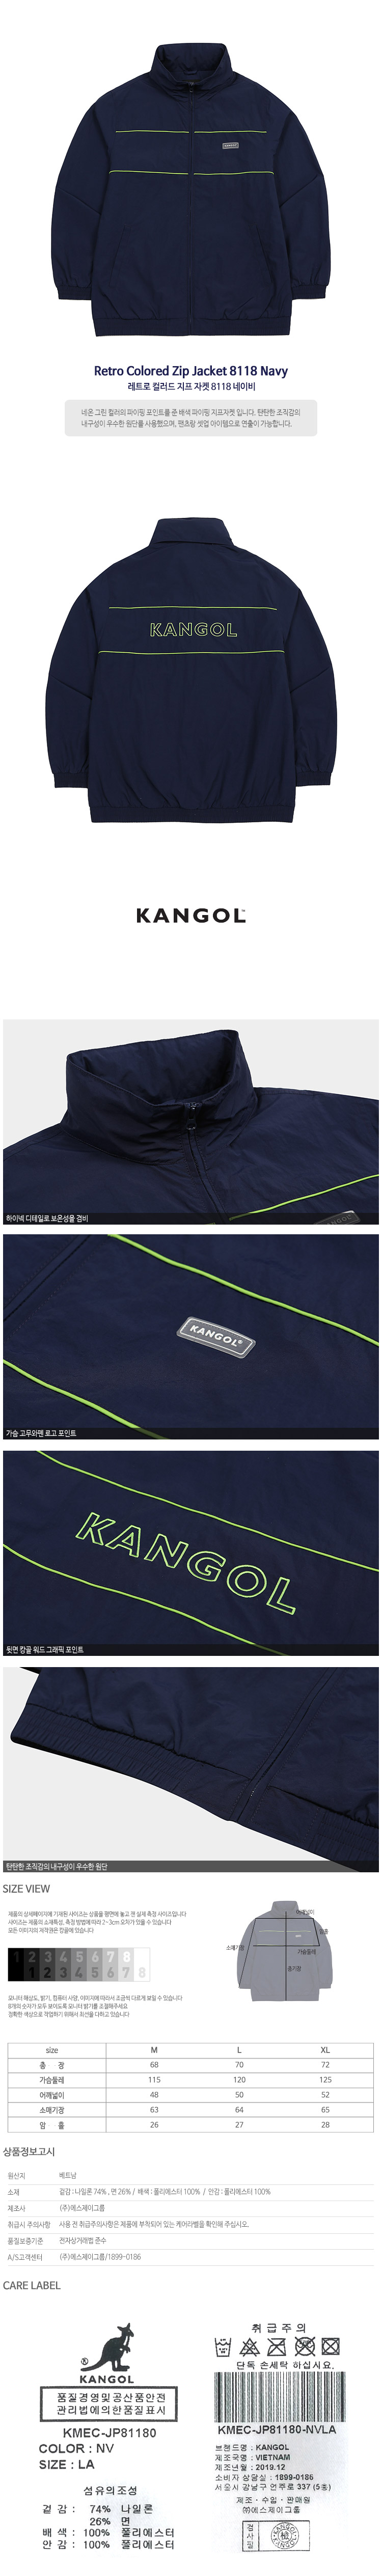 Retro Colored Zip Jacket 8118 NAVY